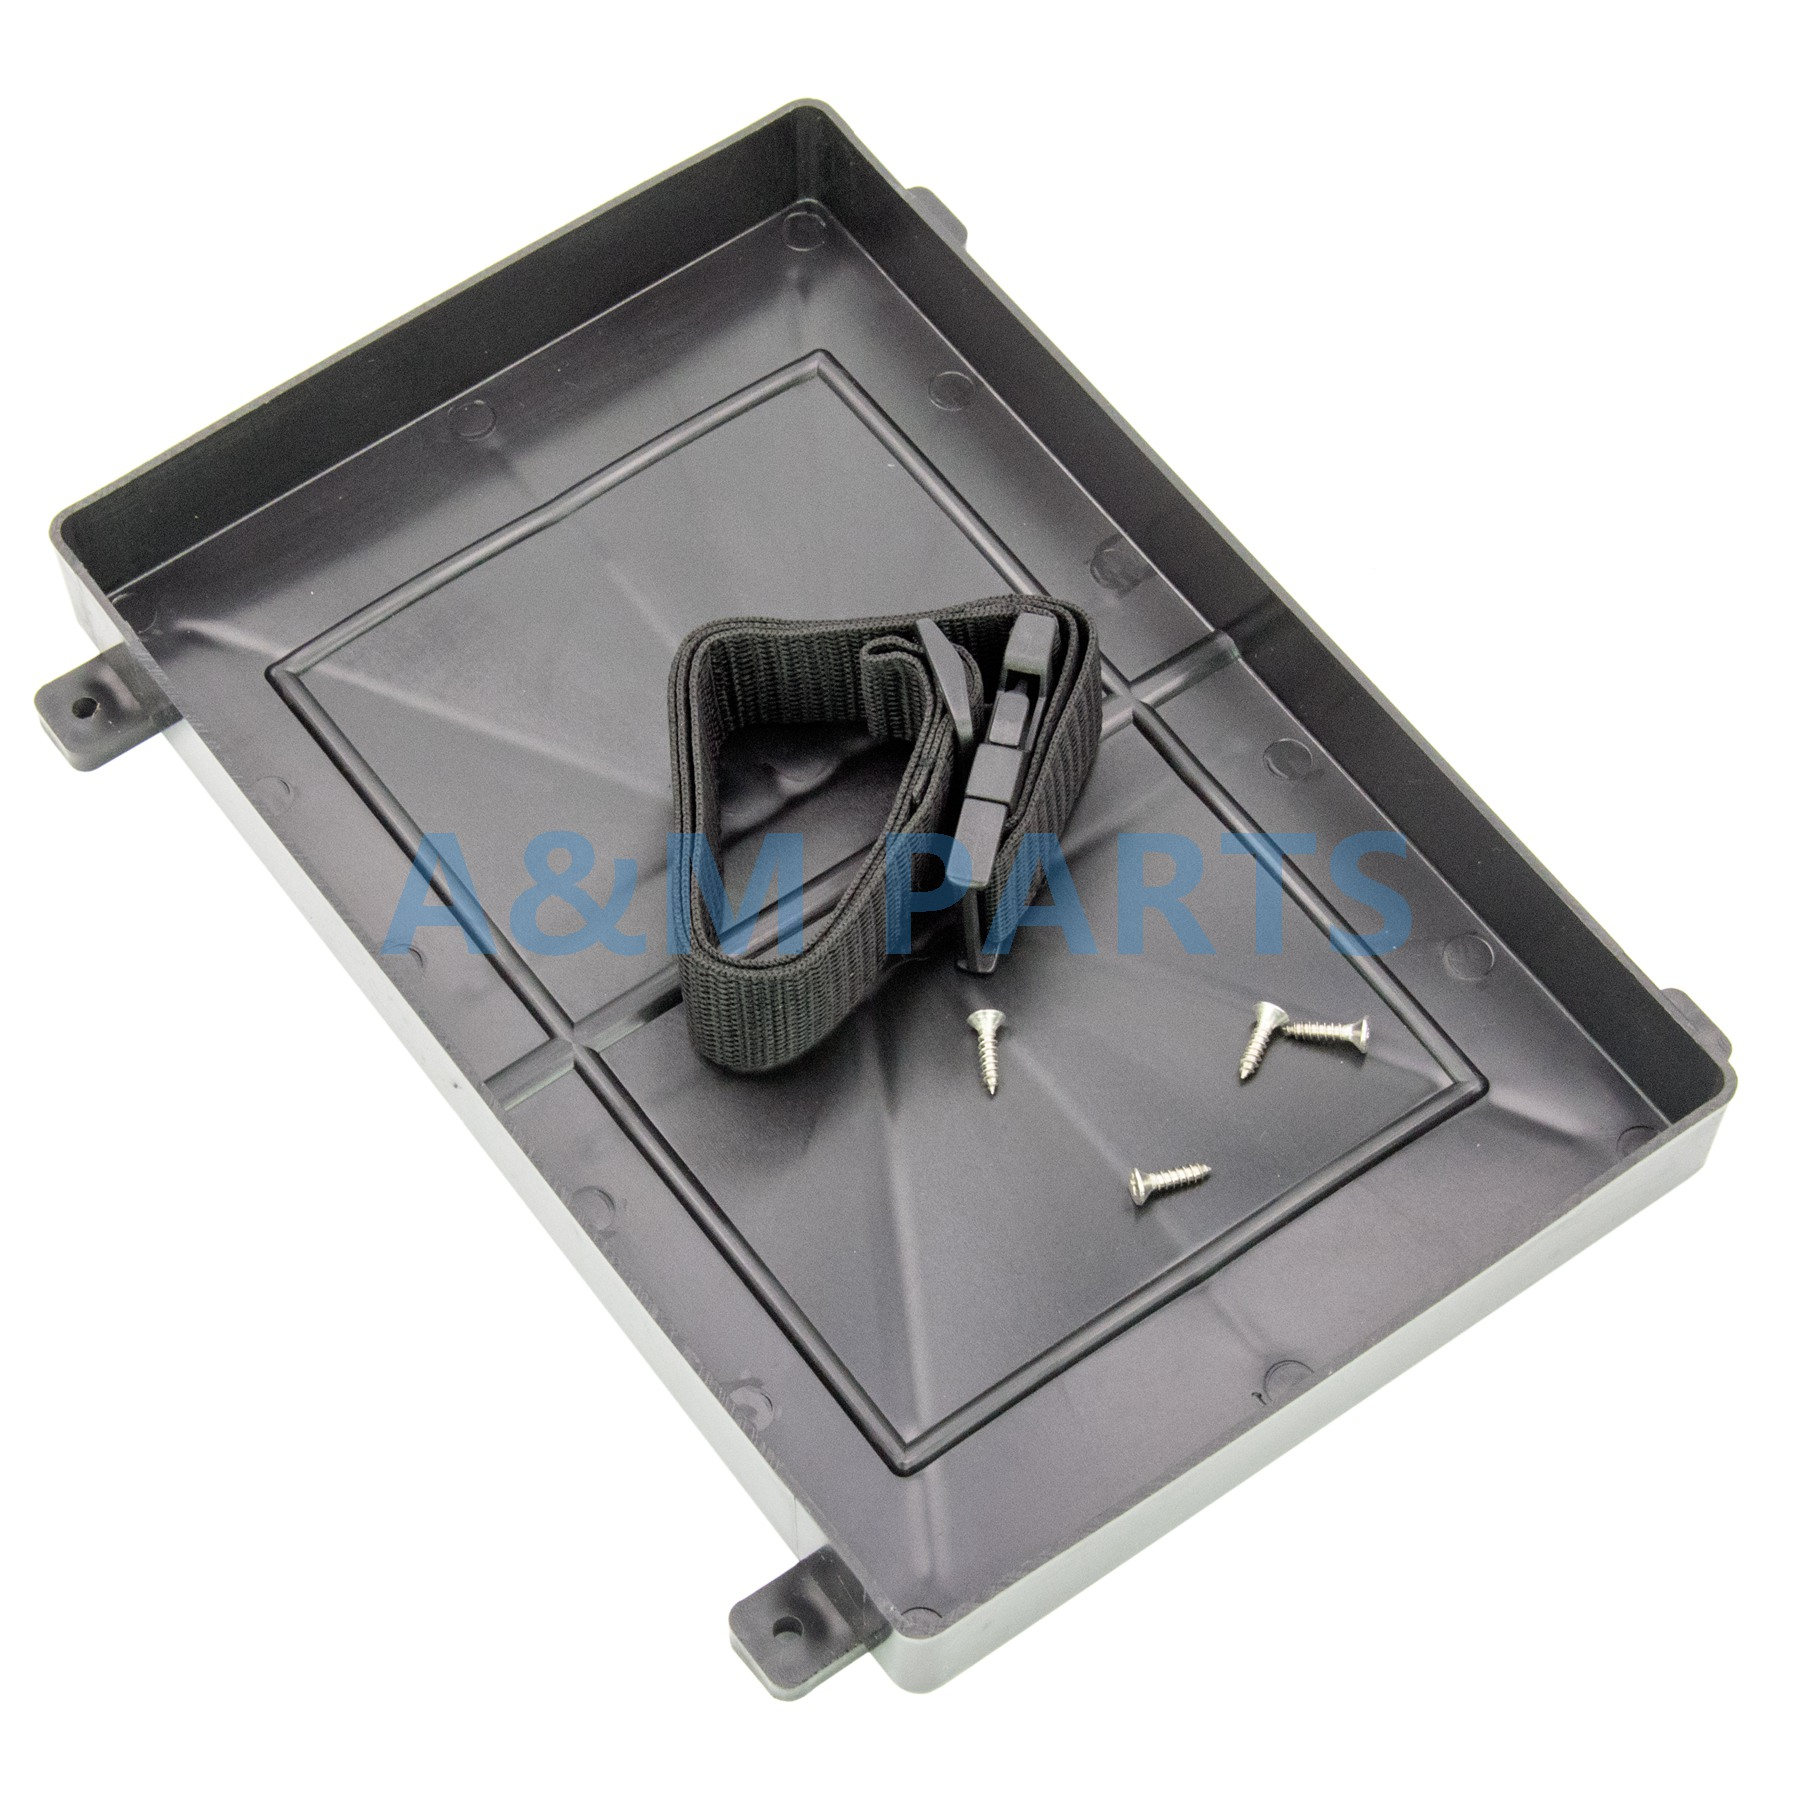 Plastic Marine Boat Battery Tray Box Bracket with Strap for RV Truck